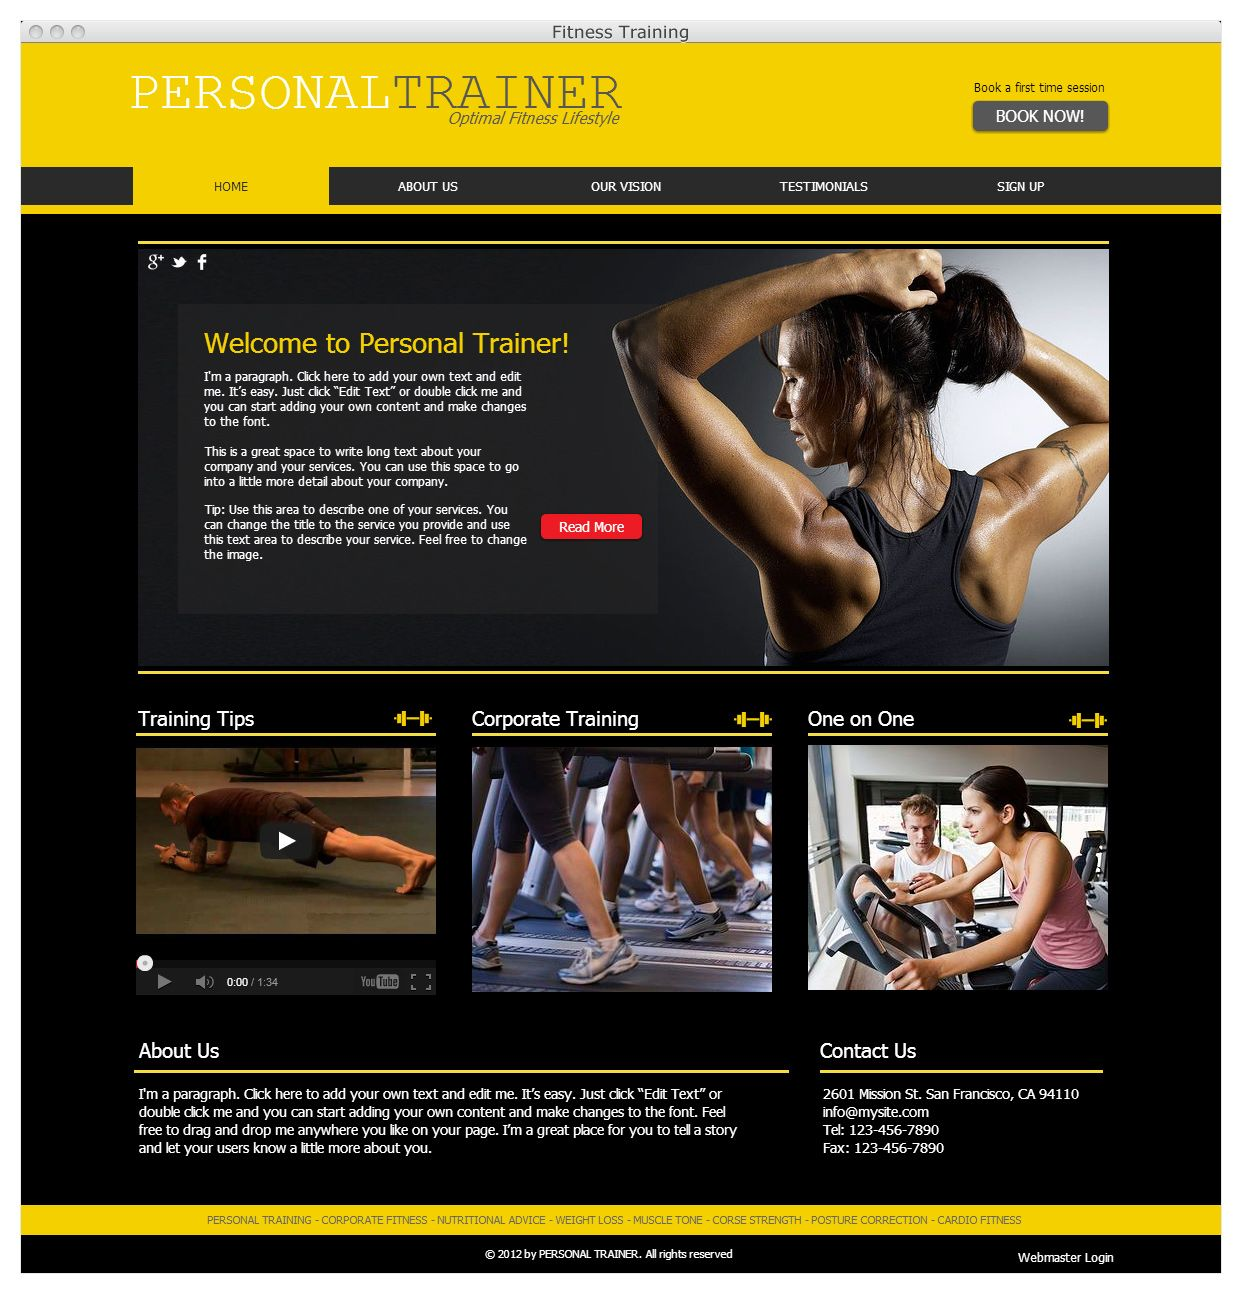 Personal trainer website ready to go Wix Website